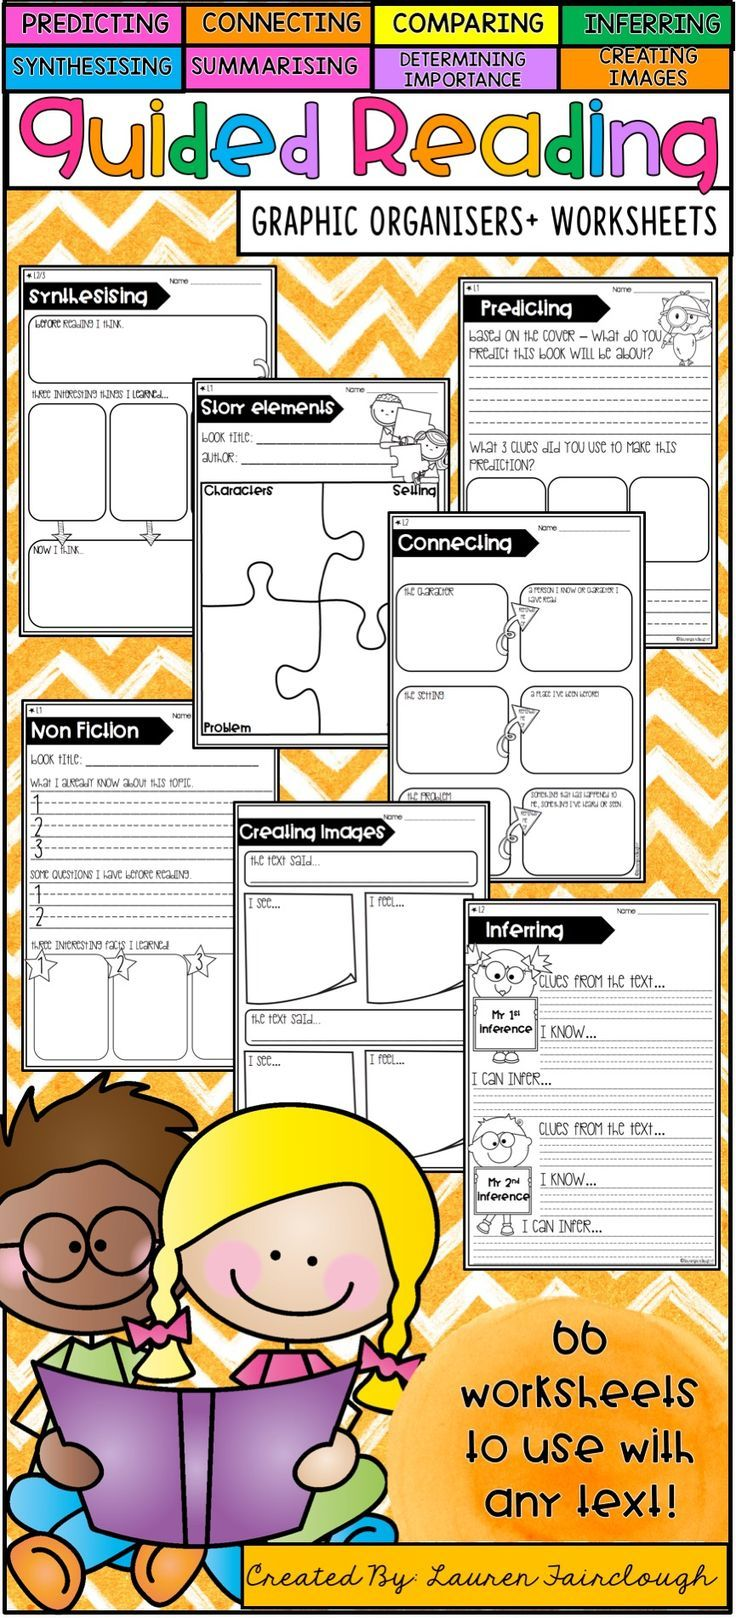 Guided Reading Graphic Organisers. * Predicting * Inferring * Connecting * Comparing * Synthesising * Summarising * Creating Images * Determining Importance * Story Elements  Plus specific sheets are included for use with Non Fiction text.